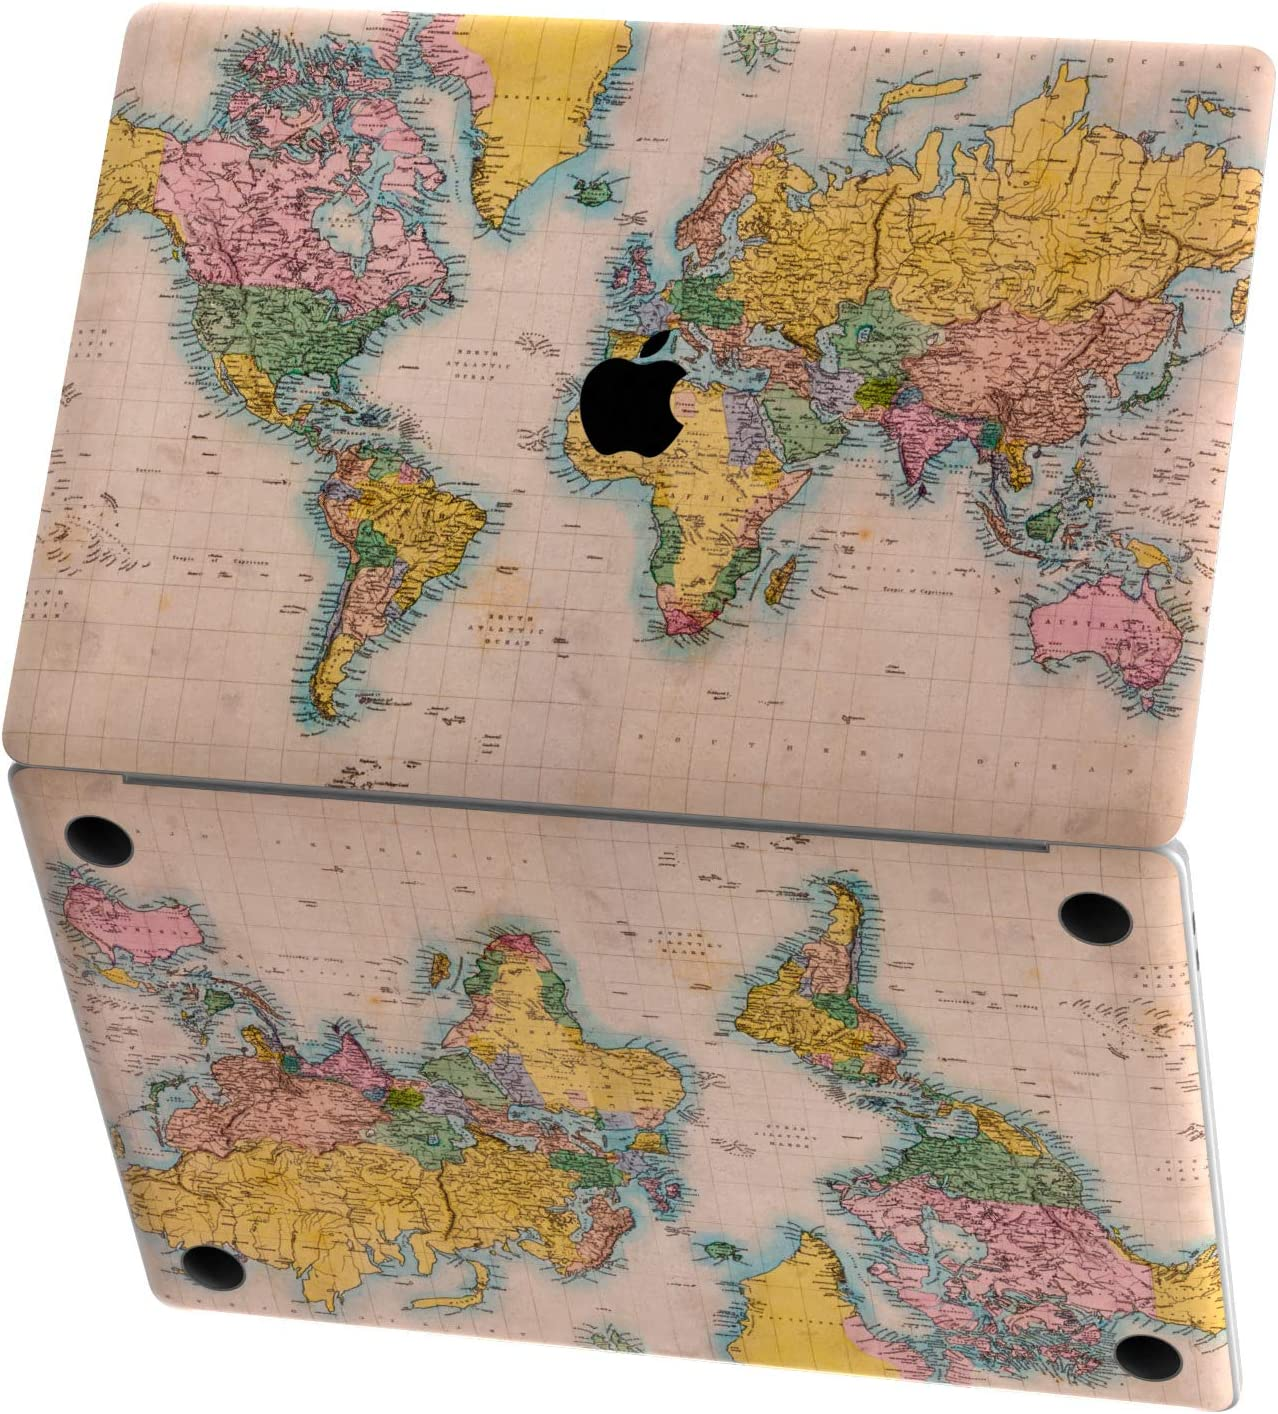 Mertak Vinyl Skin Compatible with MacBook Air 13 inch Mac Pro 16 15 Retina 12 11 2020 2019 2018 2017 Top Cover Decal Sticker Wrap Atlas Continents Keyboard Geography Old World Map Vintage Print